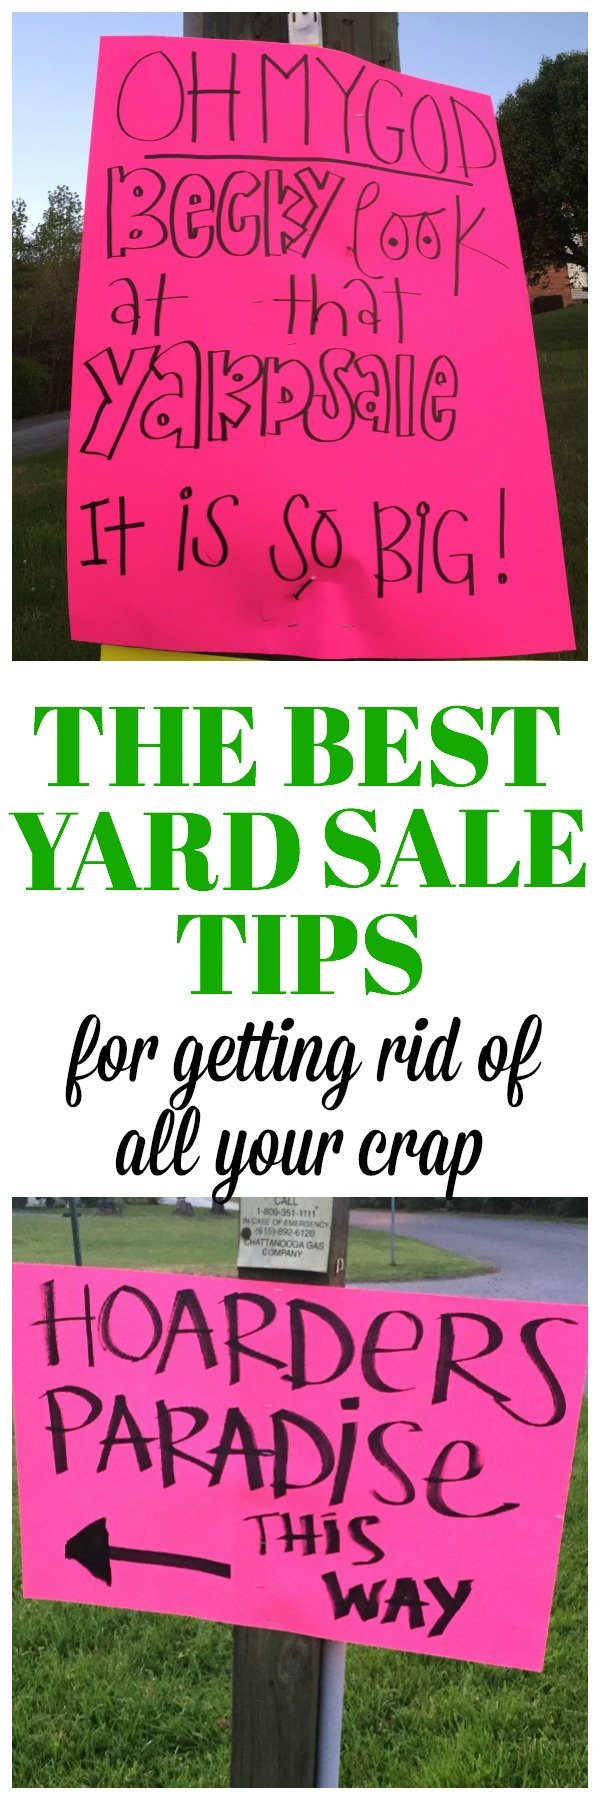 Garage Sale Price Stickers The Best Yard Sale Tips To Get Rid Of All Your Junk